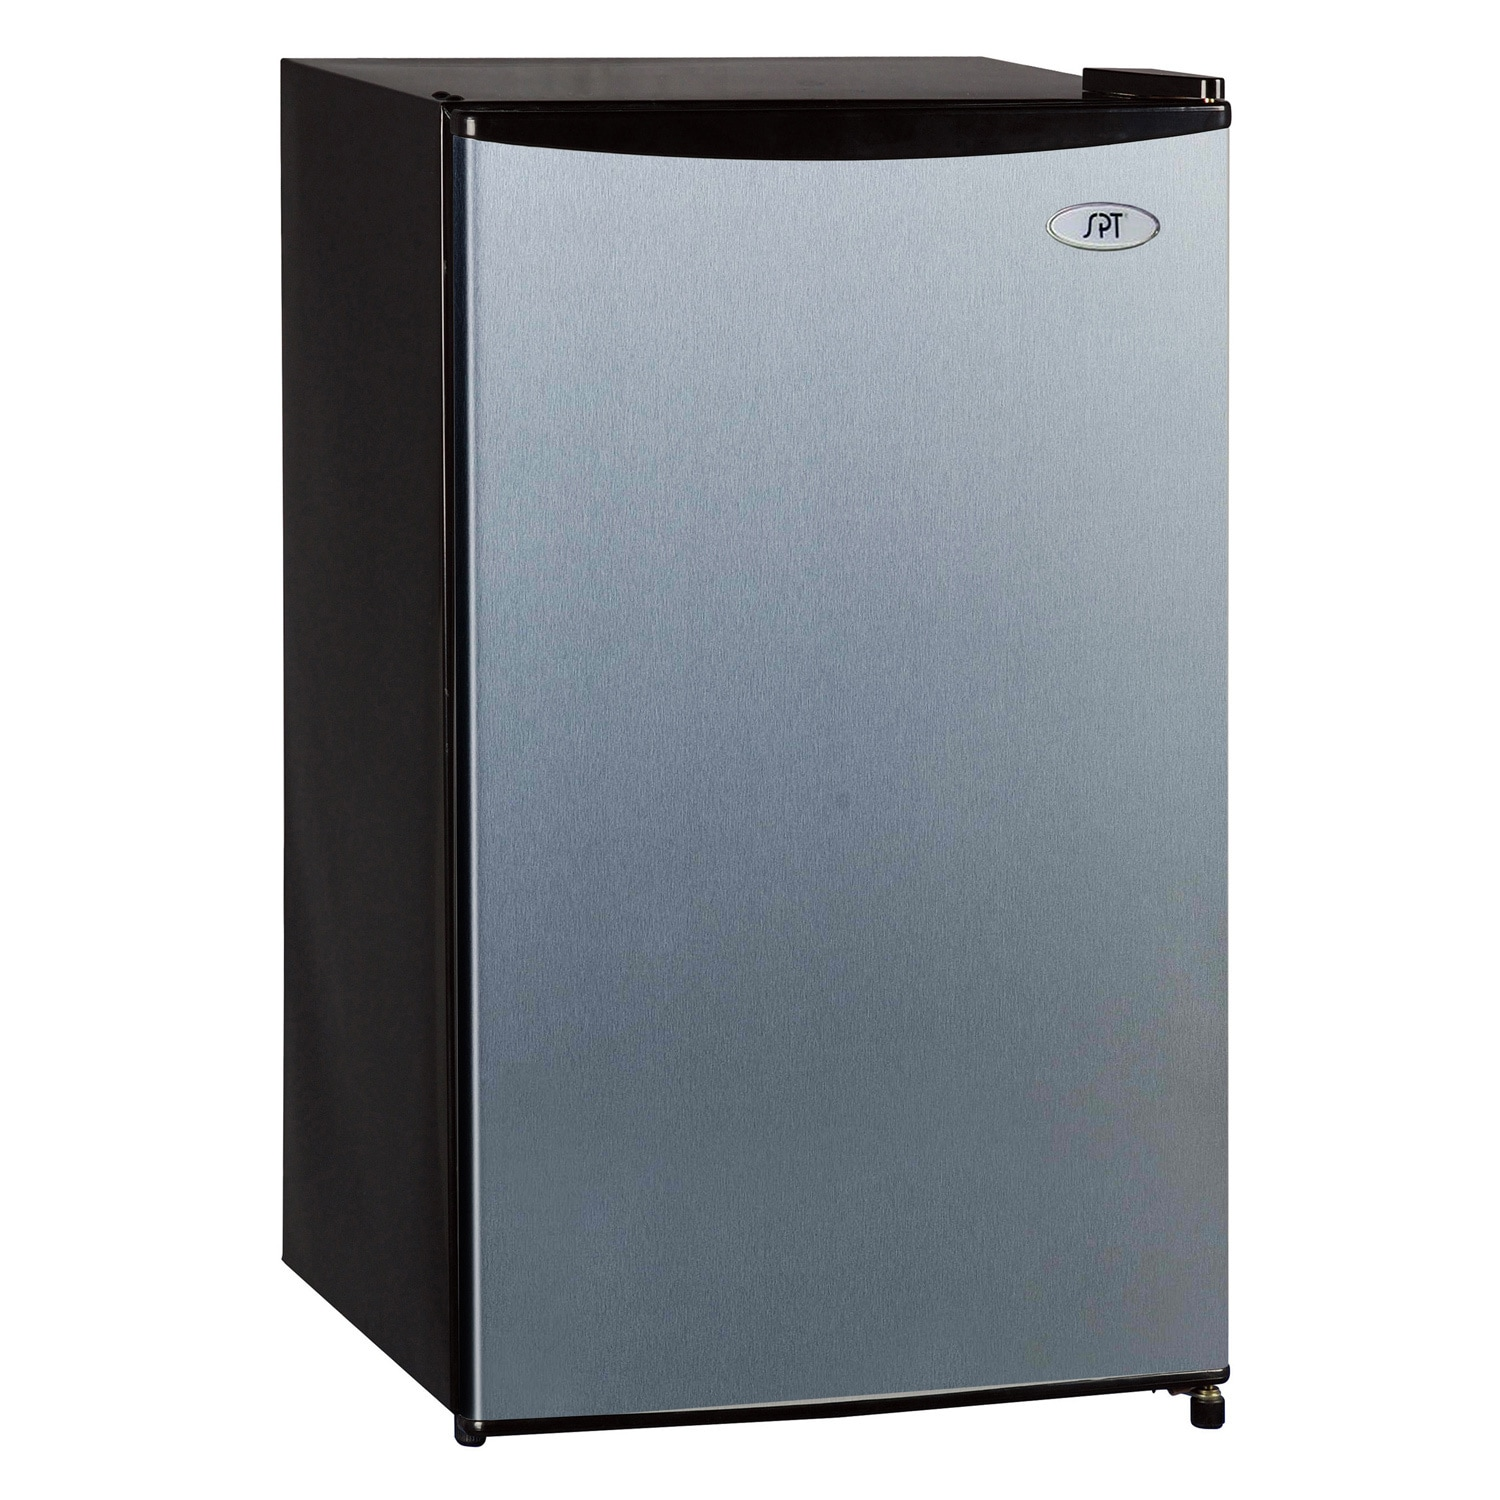 Shop SPT Stainless Steel Energy Star Compact Refrigerator - Free ...